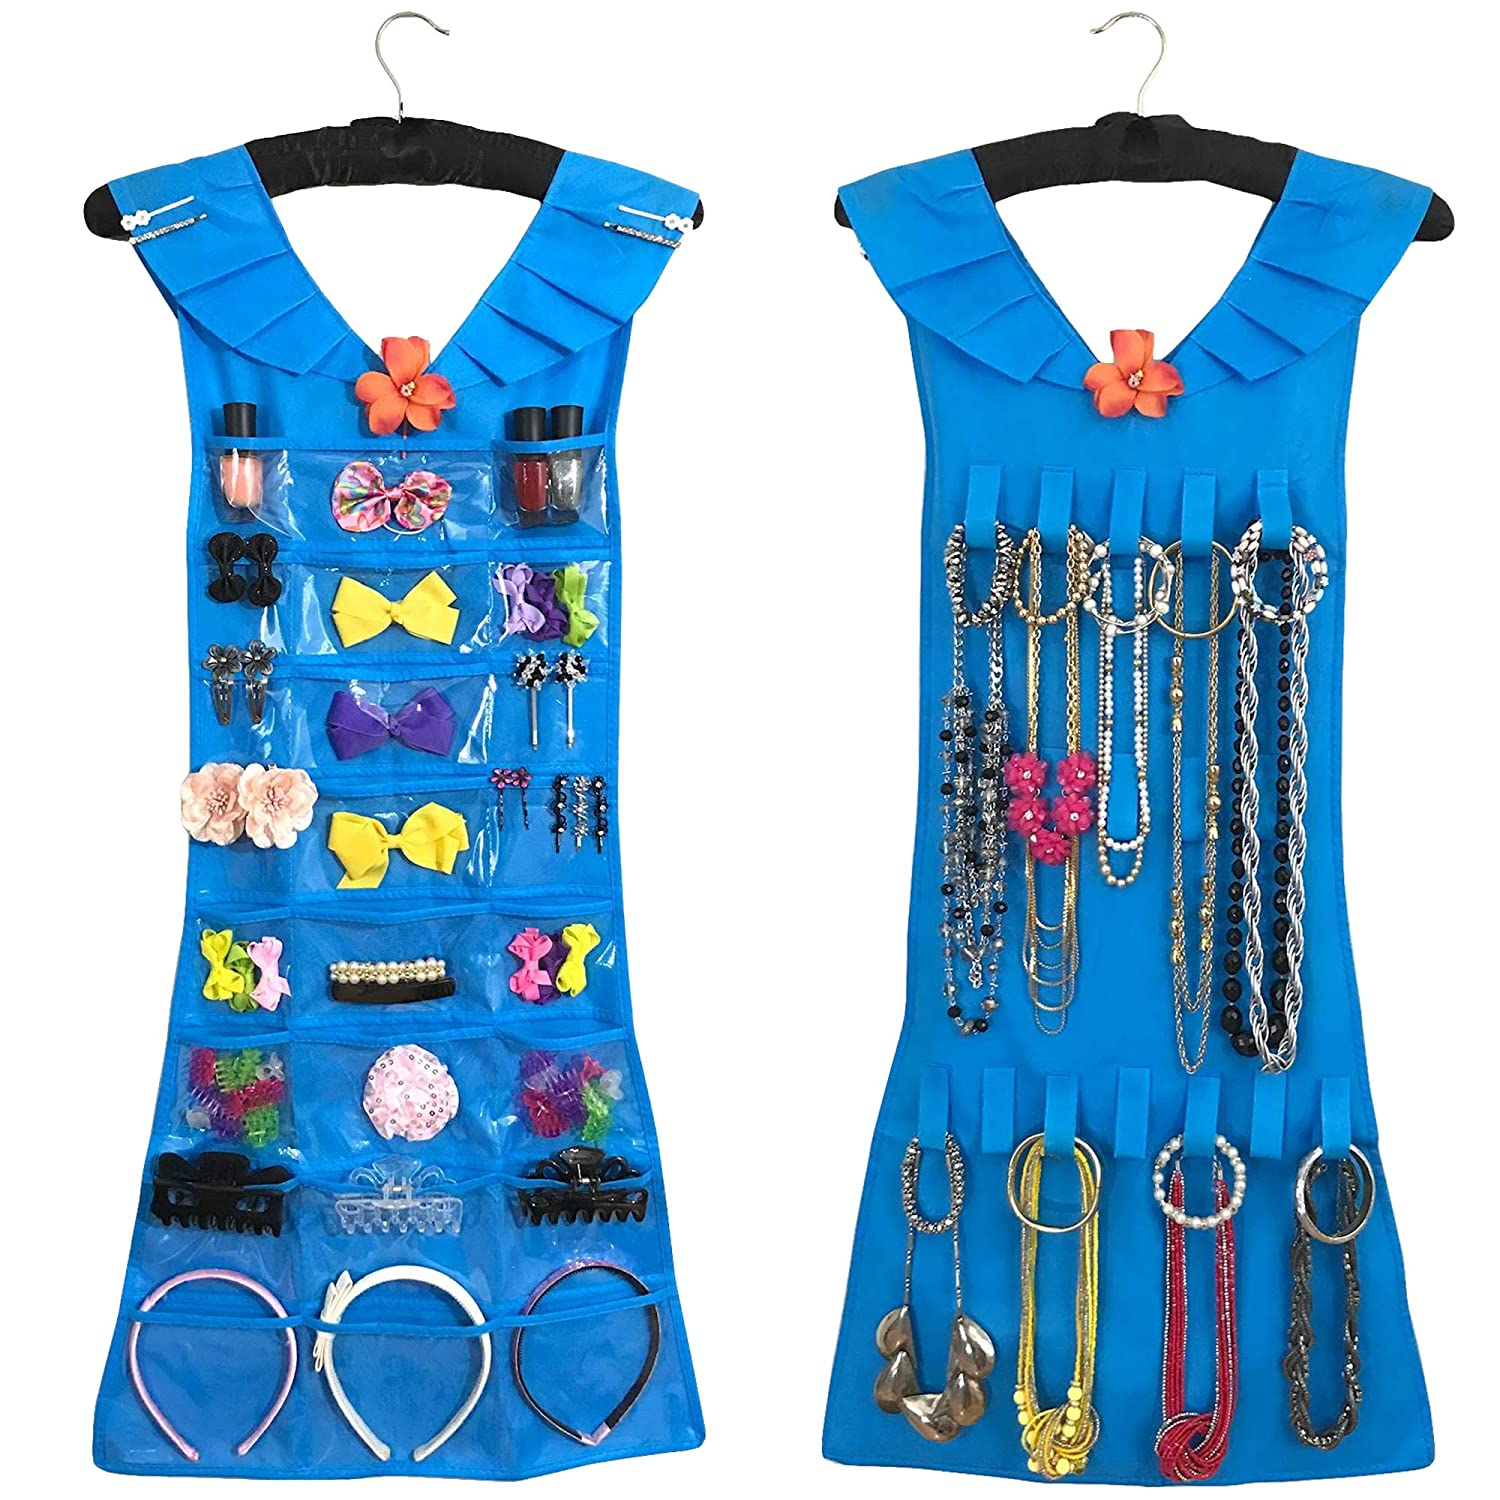 Marcus Mayfield Hanging Jewelry Organizer|Closet Storage for Jewelry-Hair Accessories-Makeup-Necklaces-Bracelets-Earrings (Black Satin Hanger, Bright Blue Dress, 27 Pockets 18 Hooks)